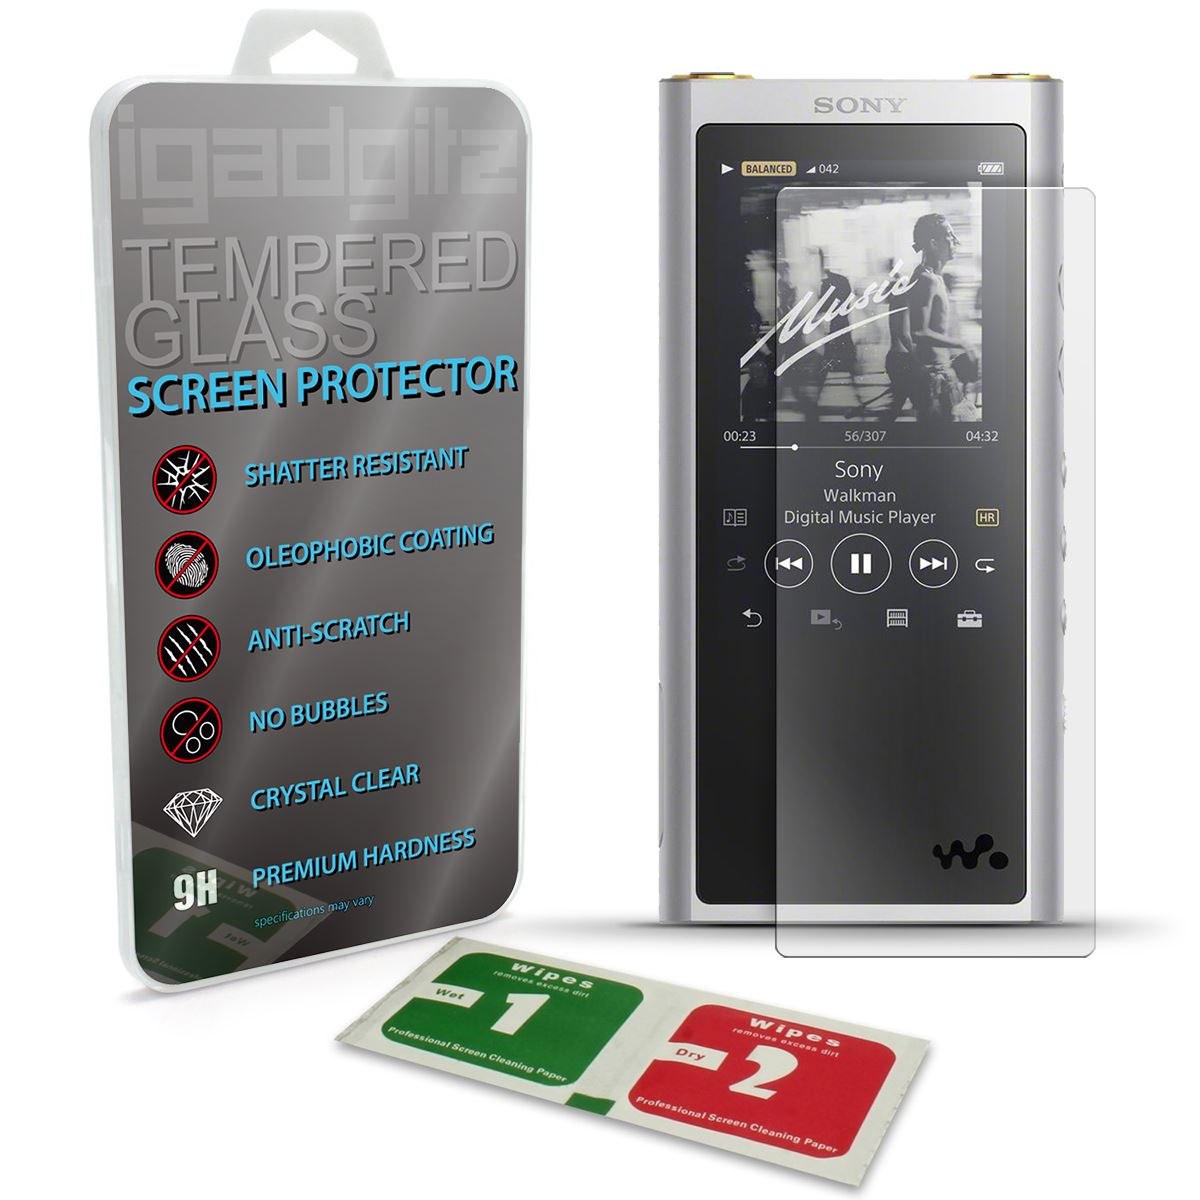 Tempered Glass Screen Protector Film for Sony Walkman NW A100 A105 A106HN A100TPS